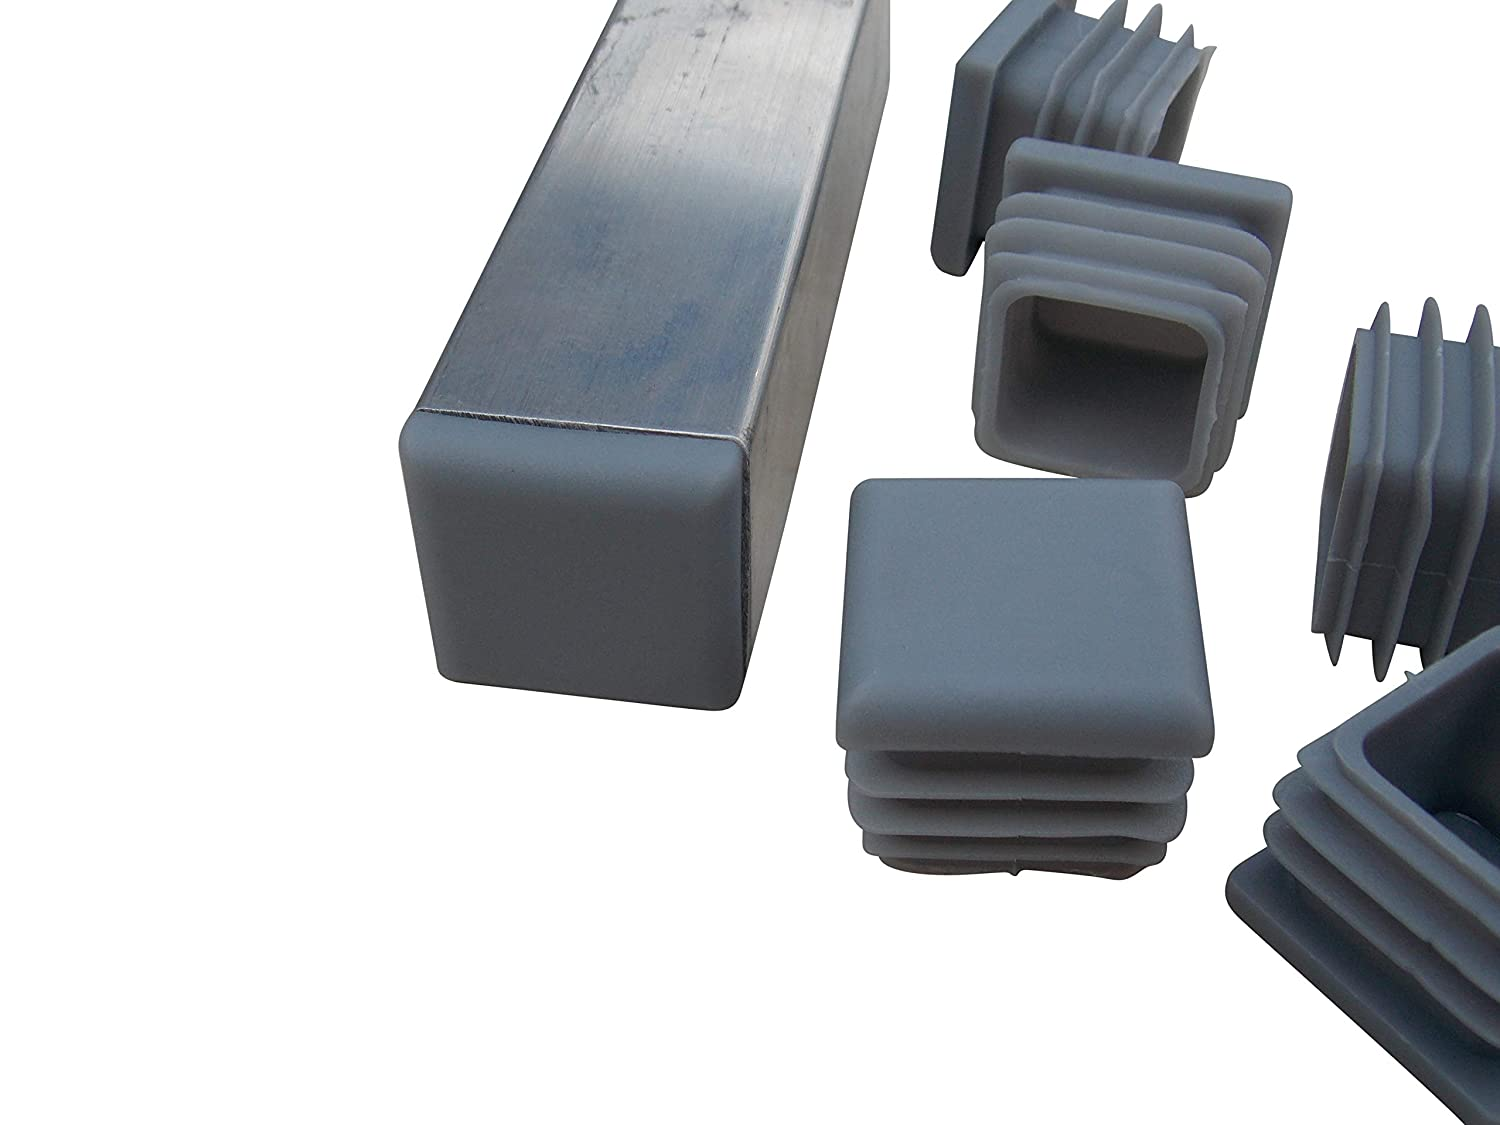 1 inch Square Plastic Plugs-Tubing End Caps 40 Count. Gray Durable Chair Glides